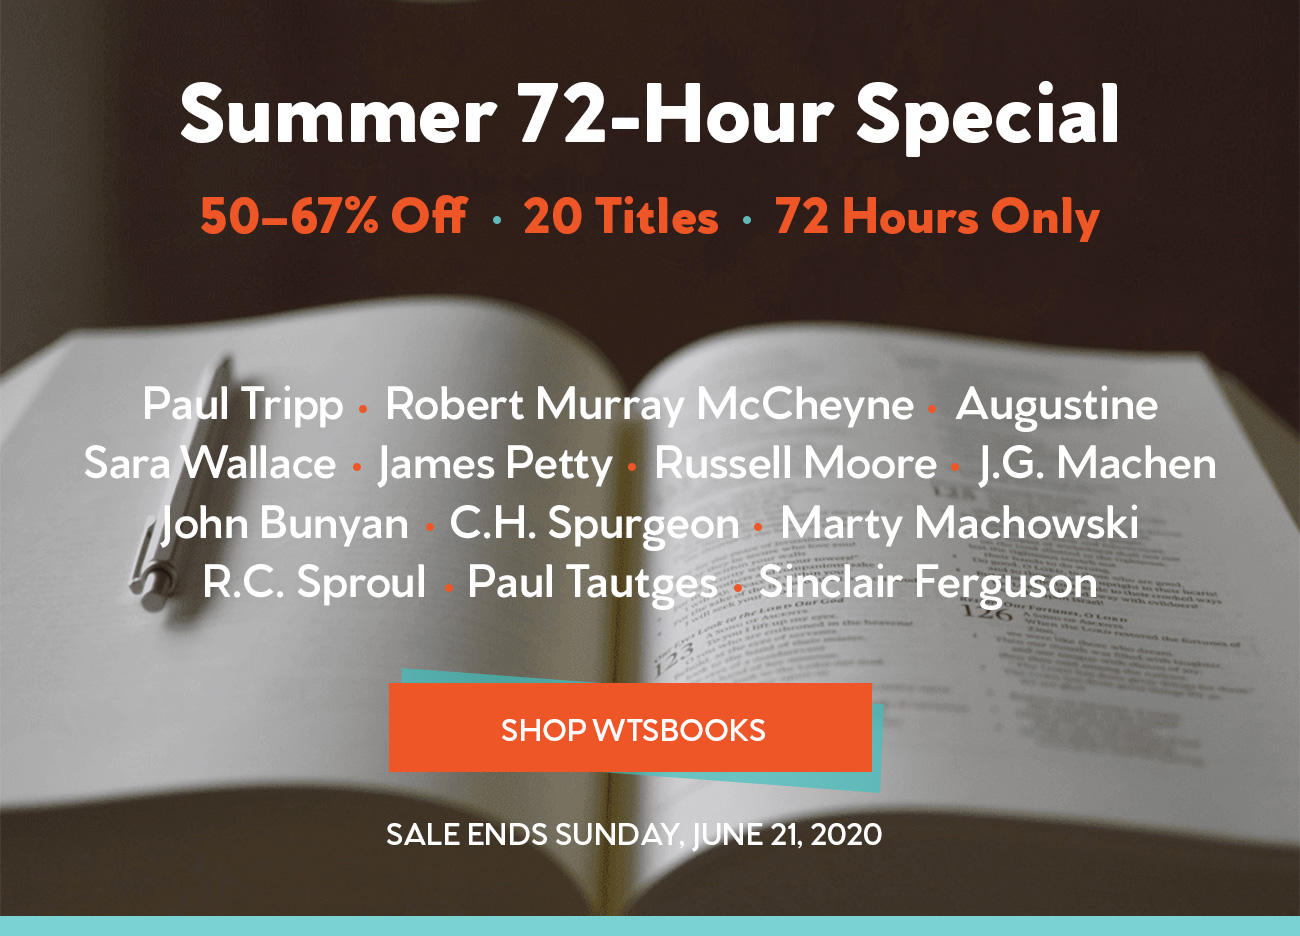 Summer 72-Hour Special